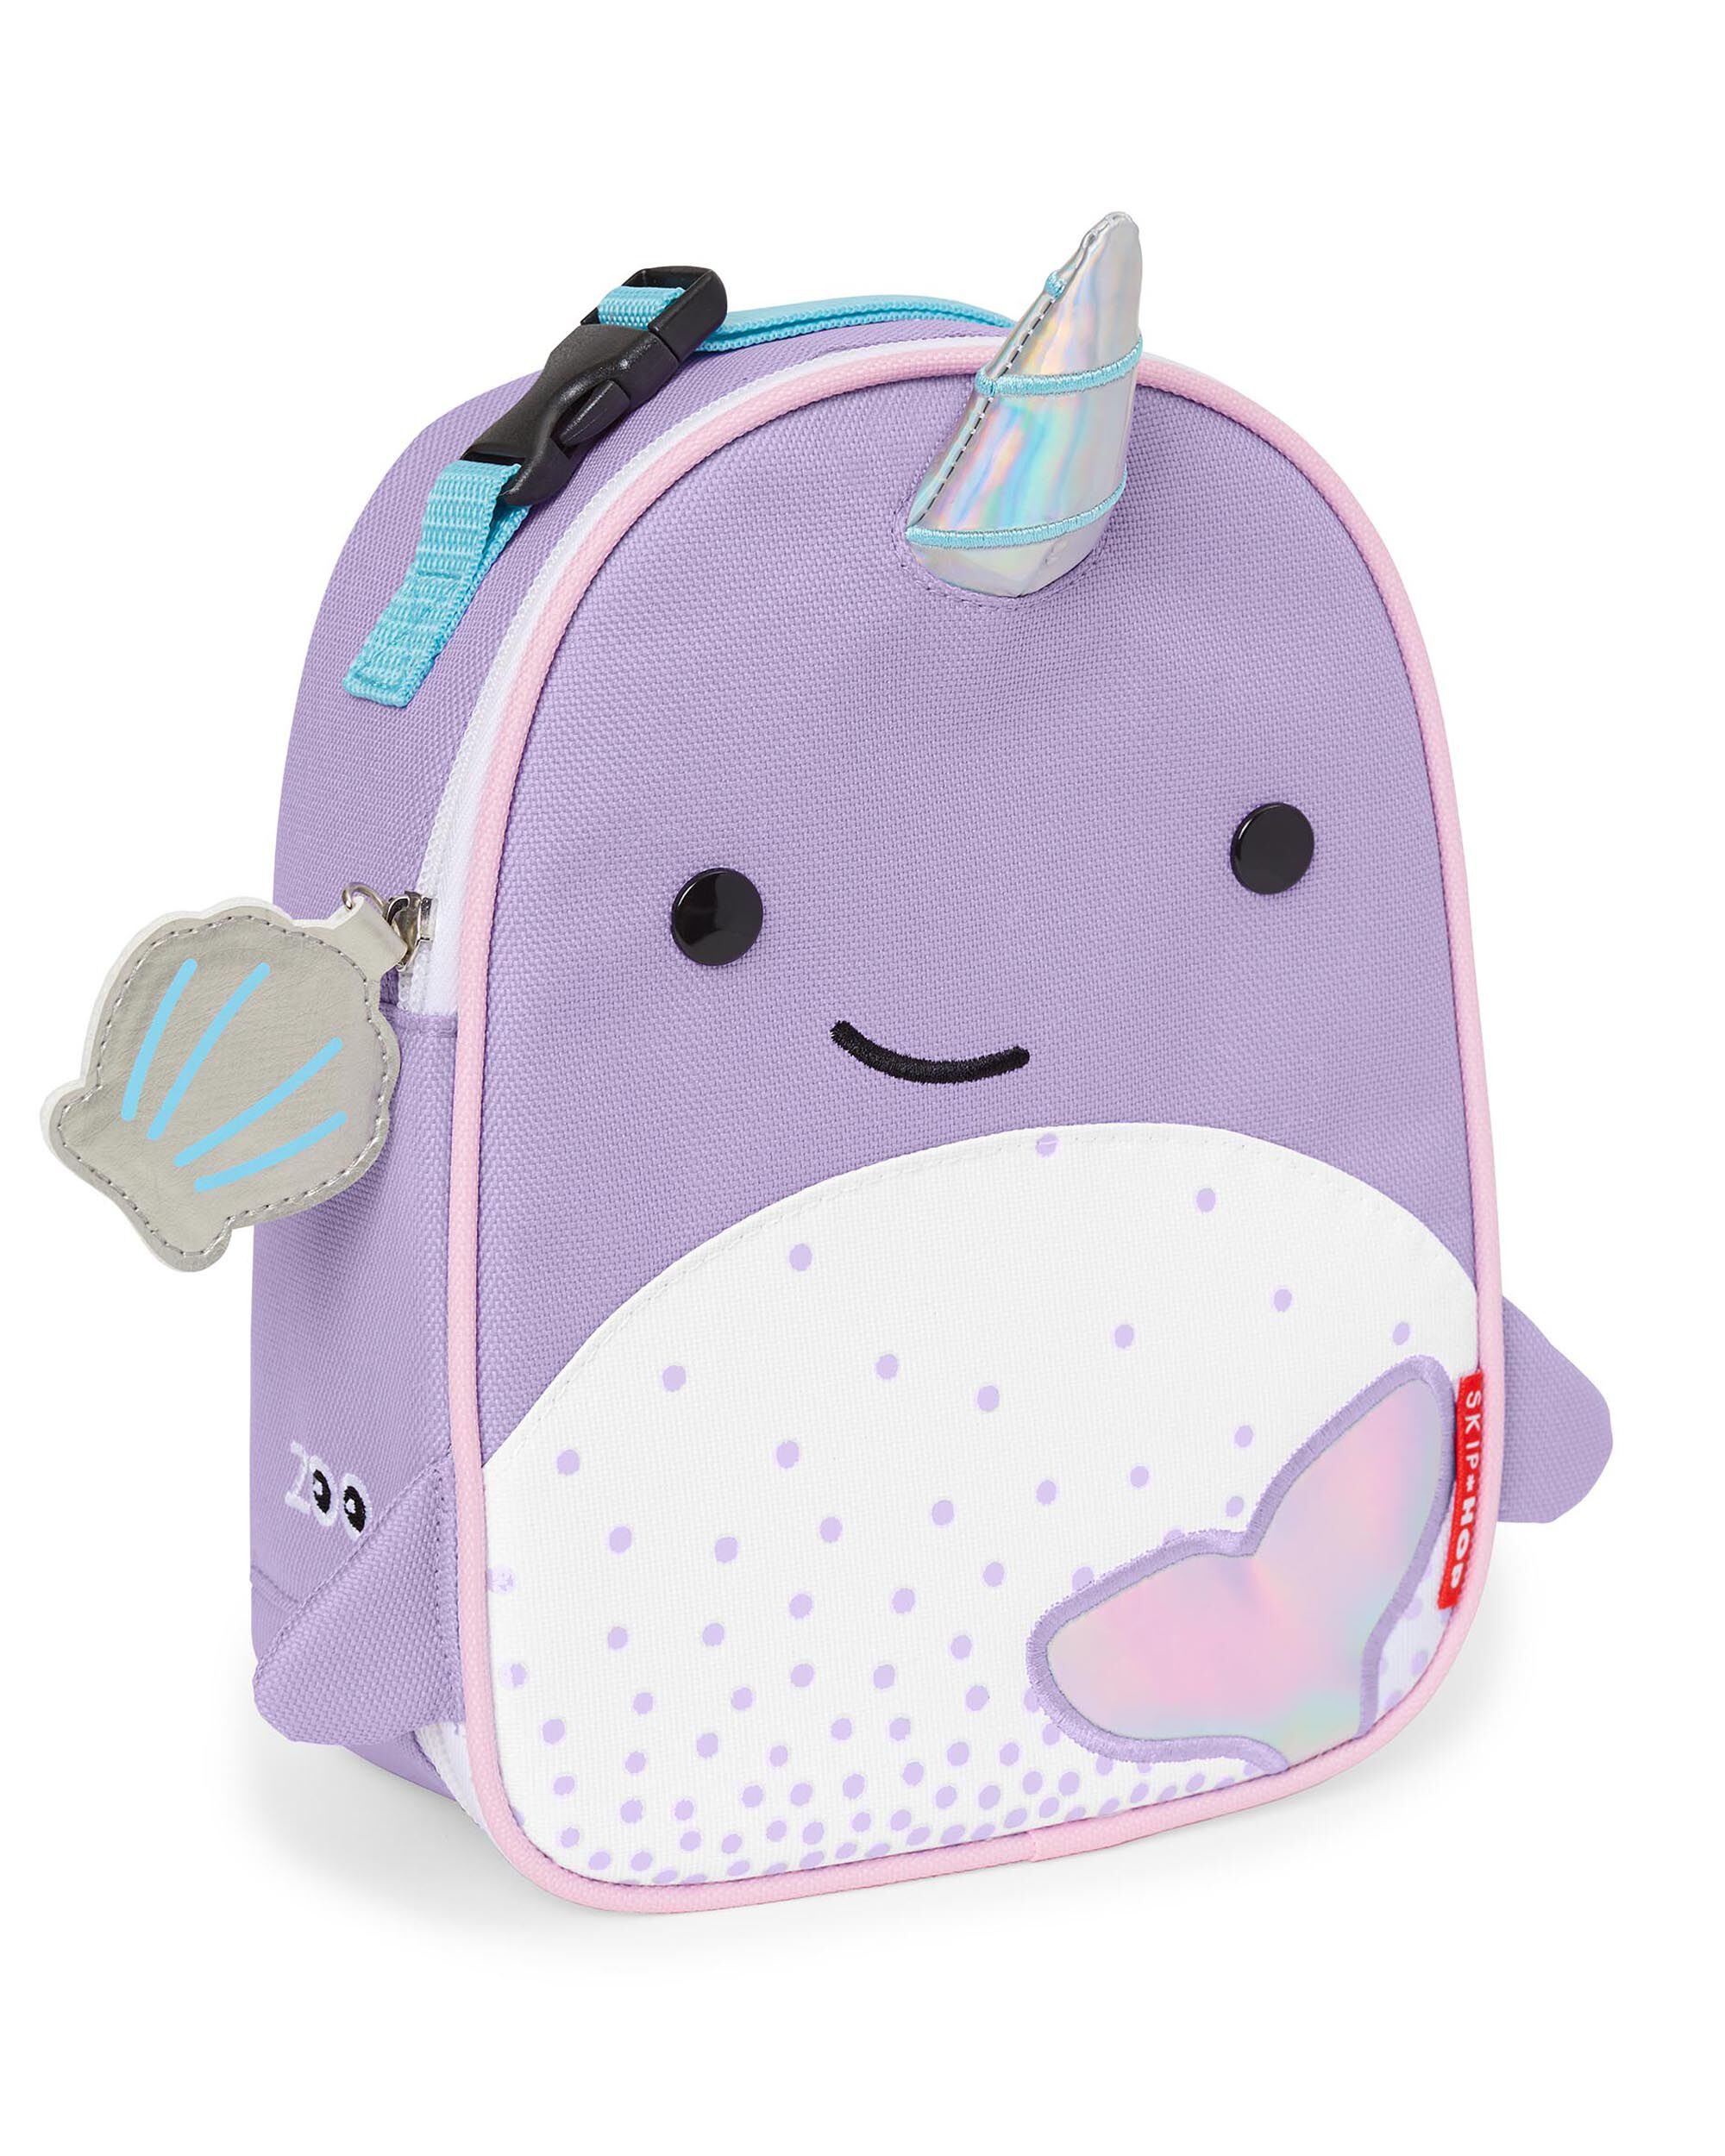 Oshkoshbgosh Zoo Lunchie Insulated Kids Lunch Bag